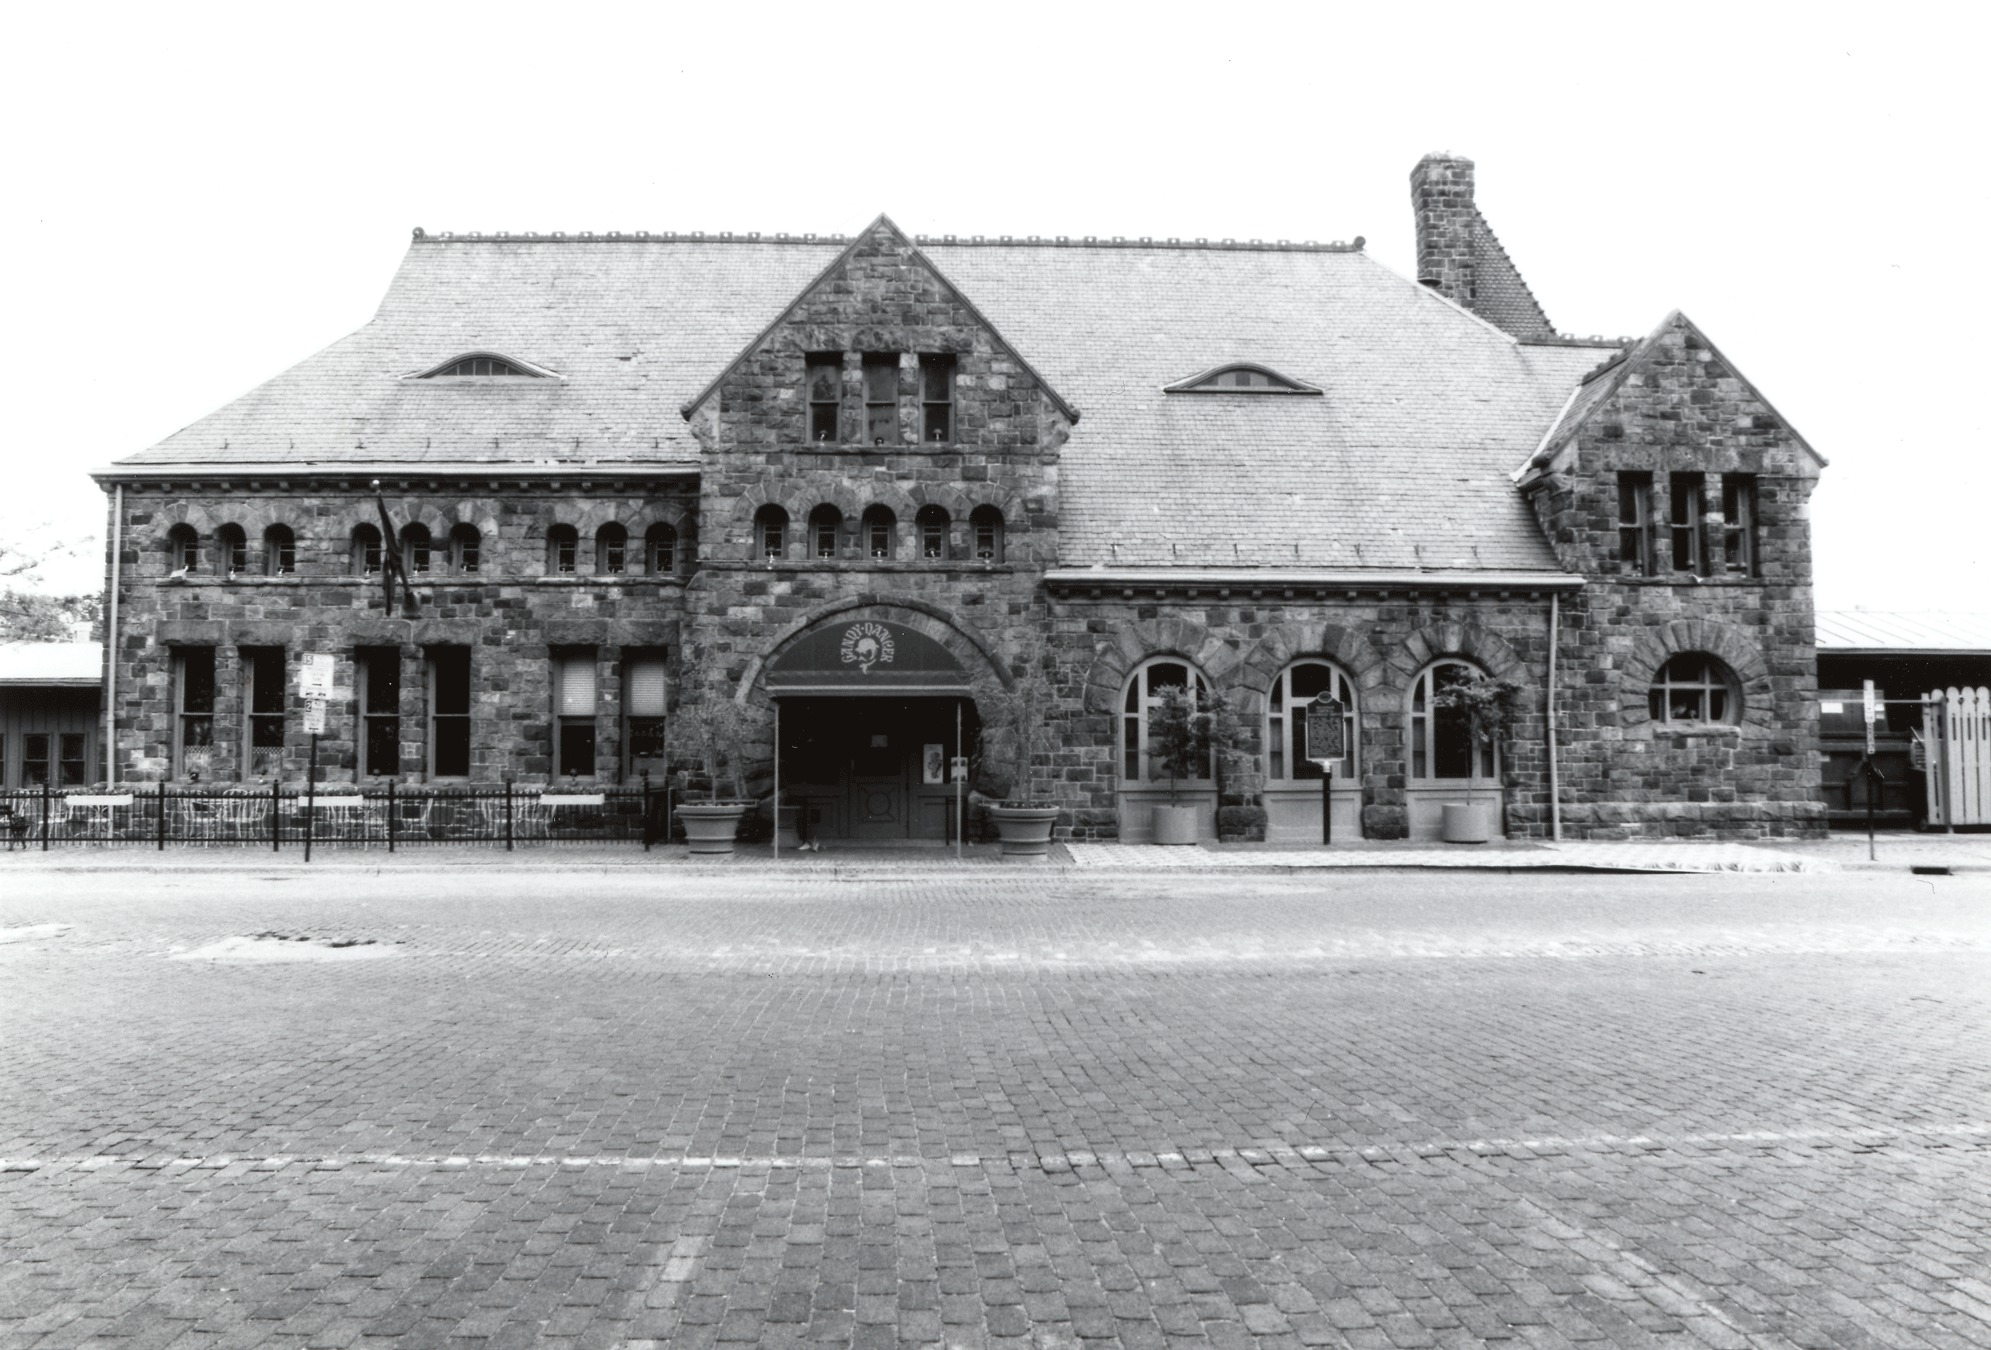 Michigan Central Railroad Depot, Gandy Dancer, 1886 image